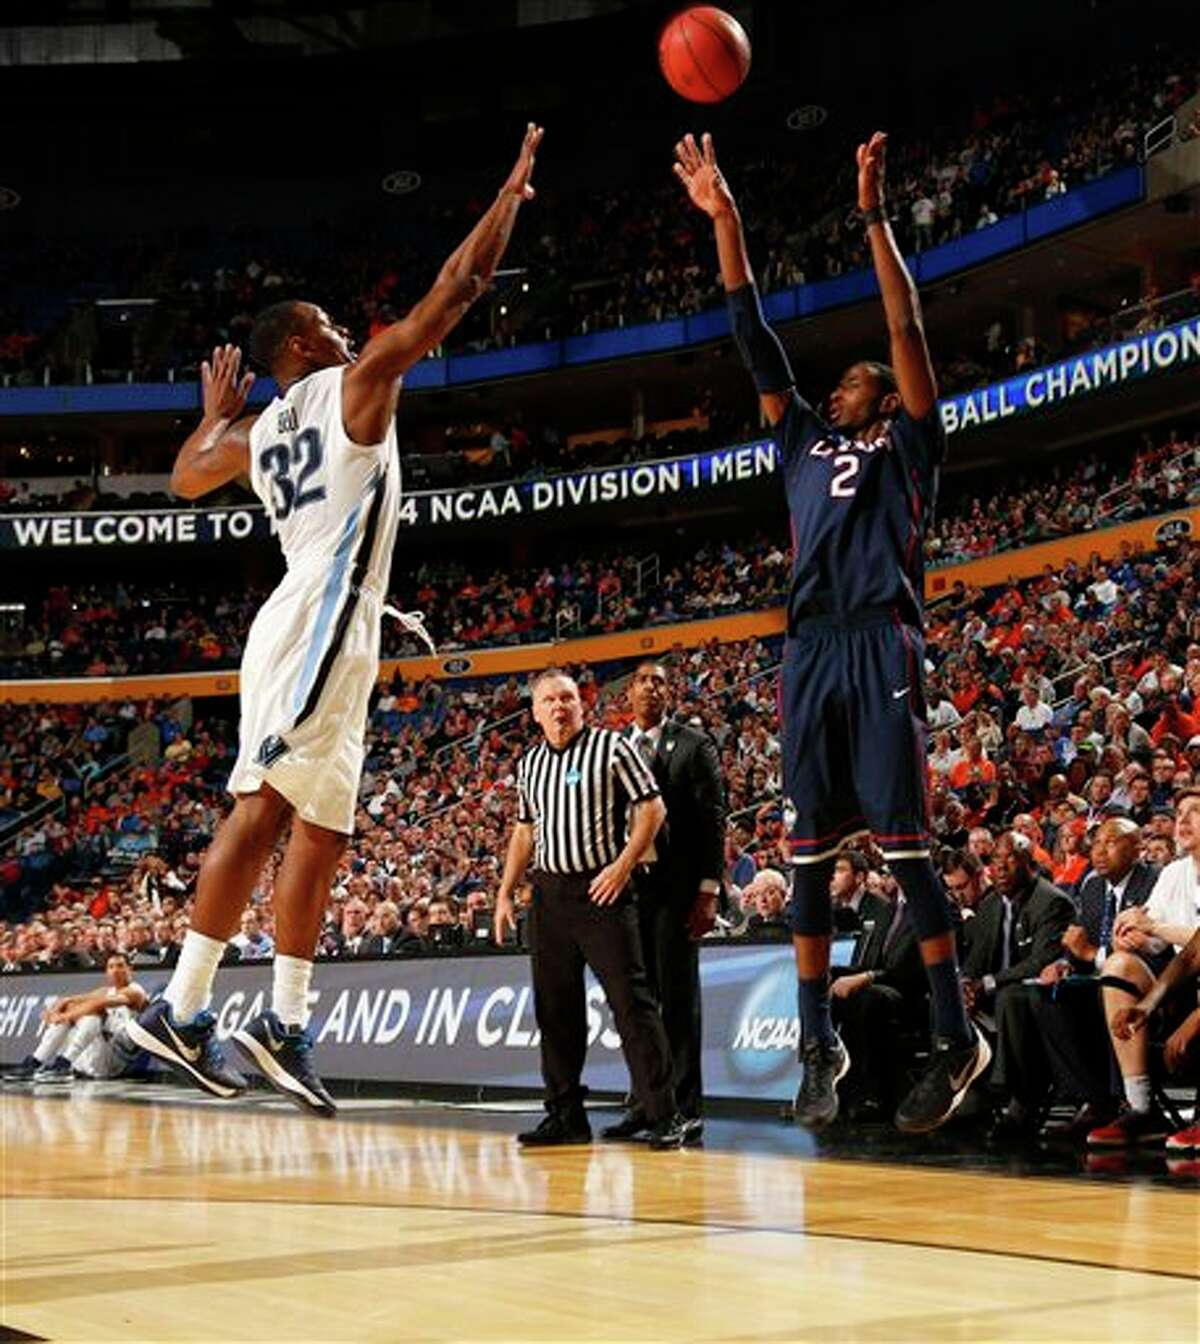 Connecticut forward DeAndre Daniels (2) shoots against Villanova guard James Bell (32) during the second half of a third-round game in the NCAA men's college basketball tournament in Buffalo, N.Y., Saturday, March 22, 2014. Connecticut defeated Villanova, 77-65. (AP Photo/Bill Wippert)